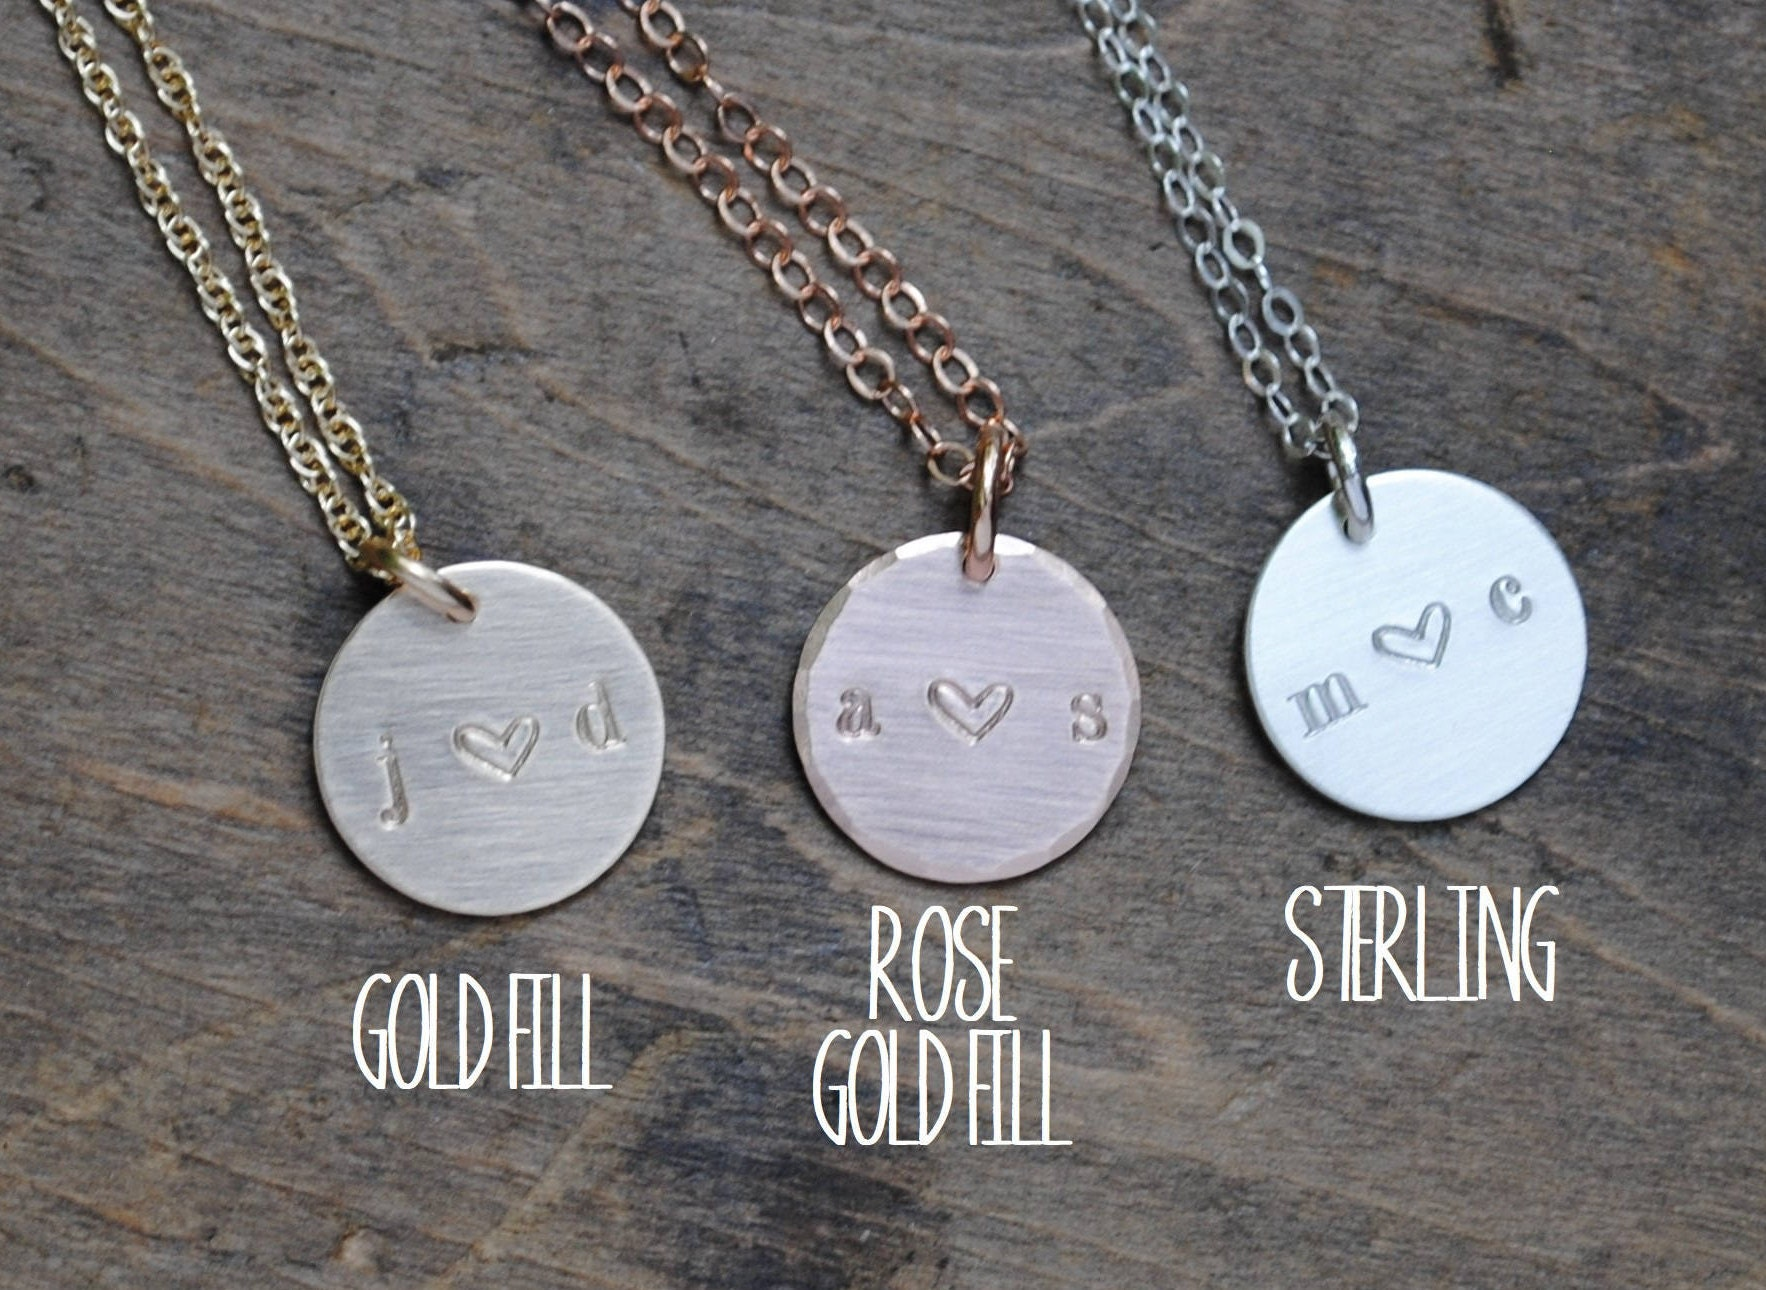 i girls librarian necklaces book some lover teacher asset transformation librarians married their awesome collections round soulmate never necklace meet mine